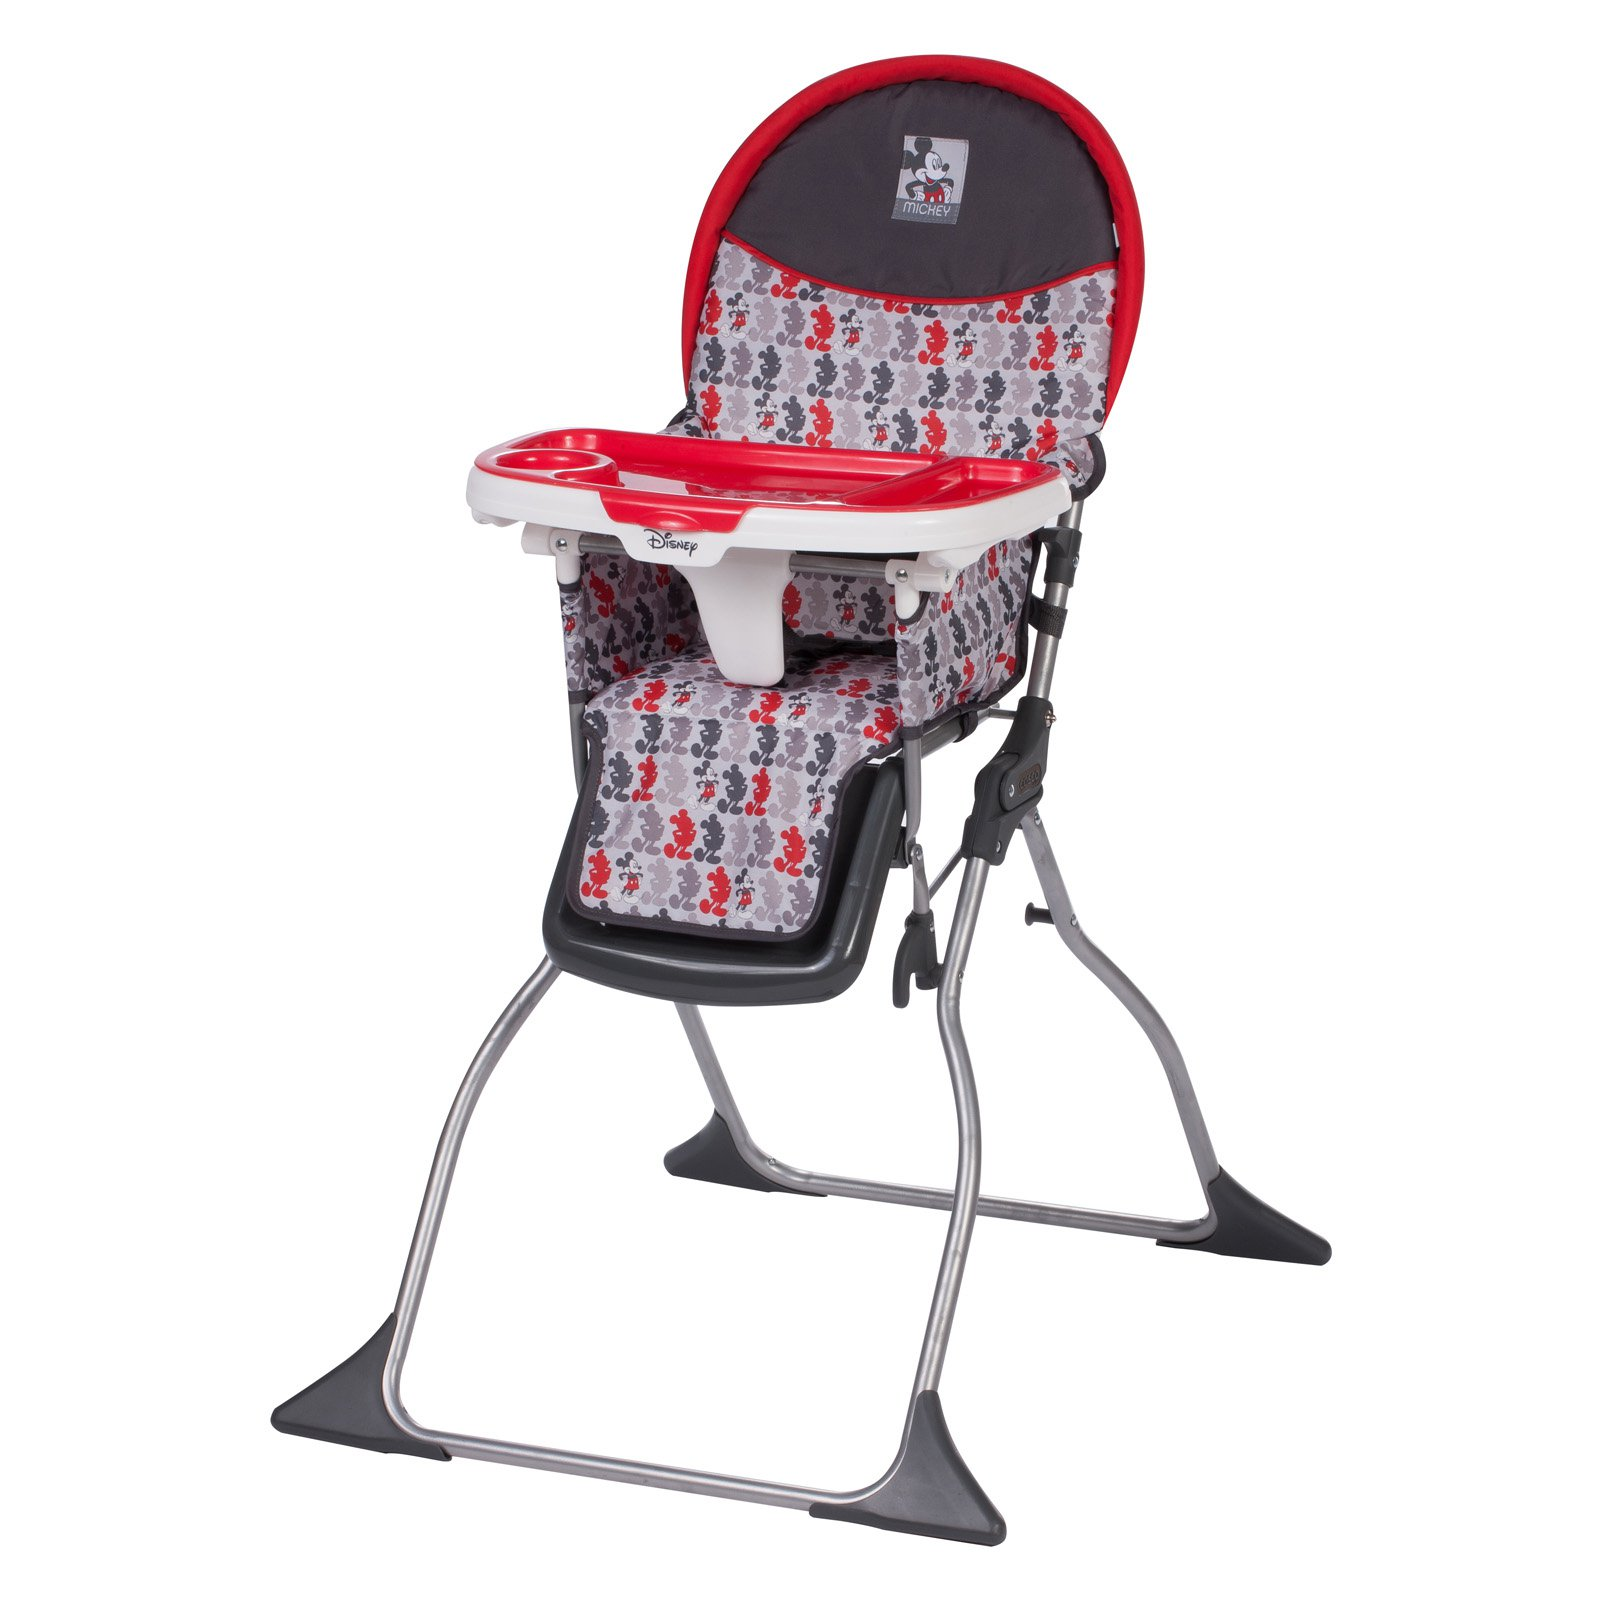 Disney Baby Simple Fold Plus High Chair Mickey Line Up by Disney